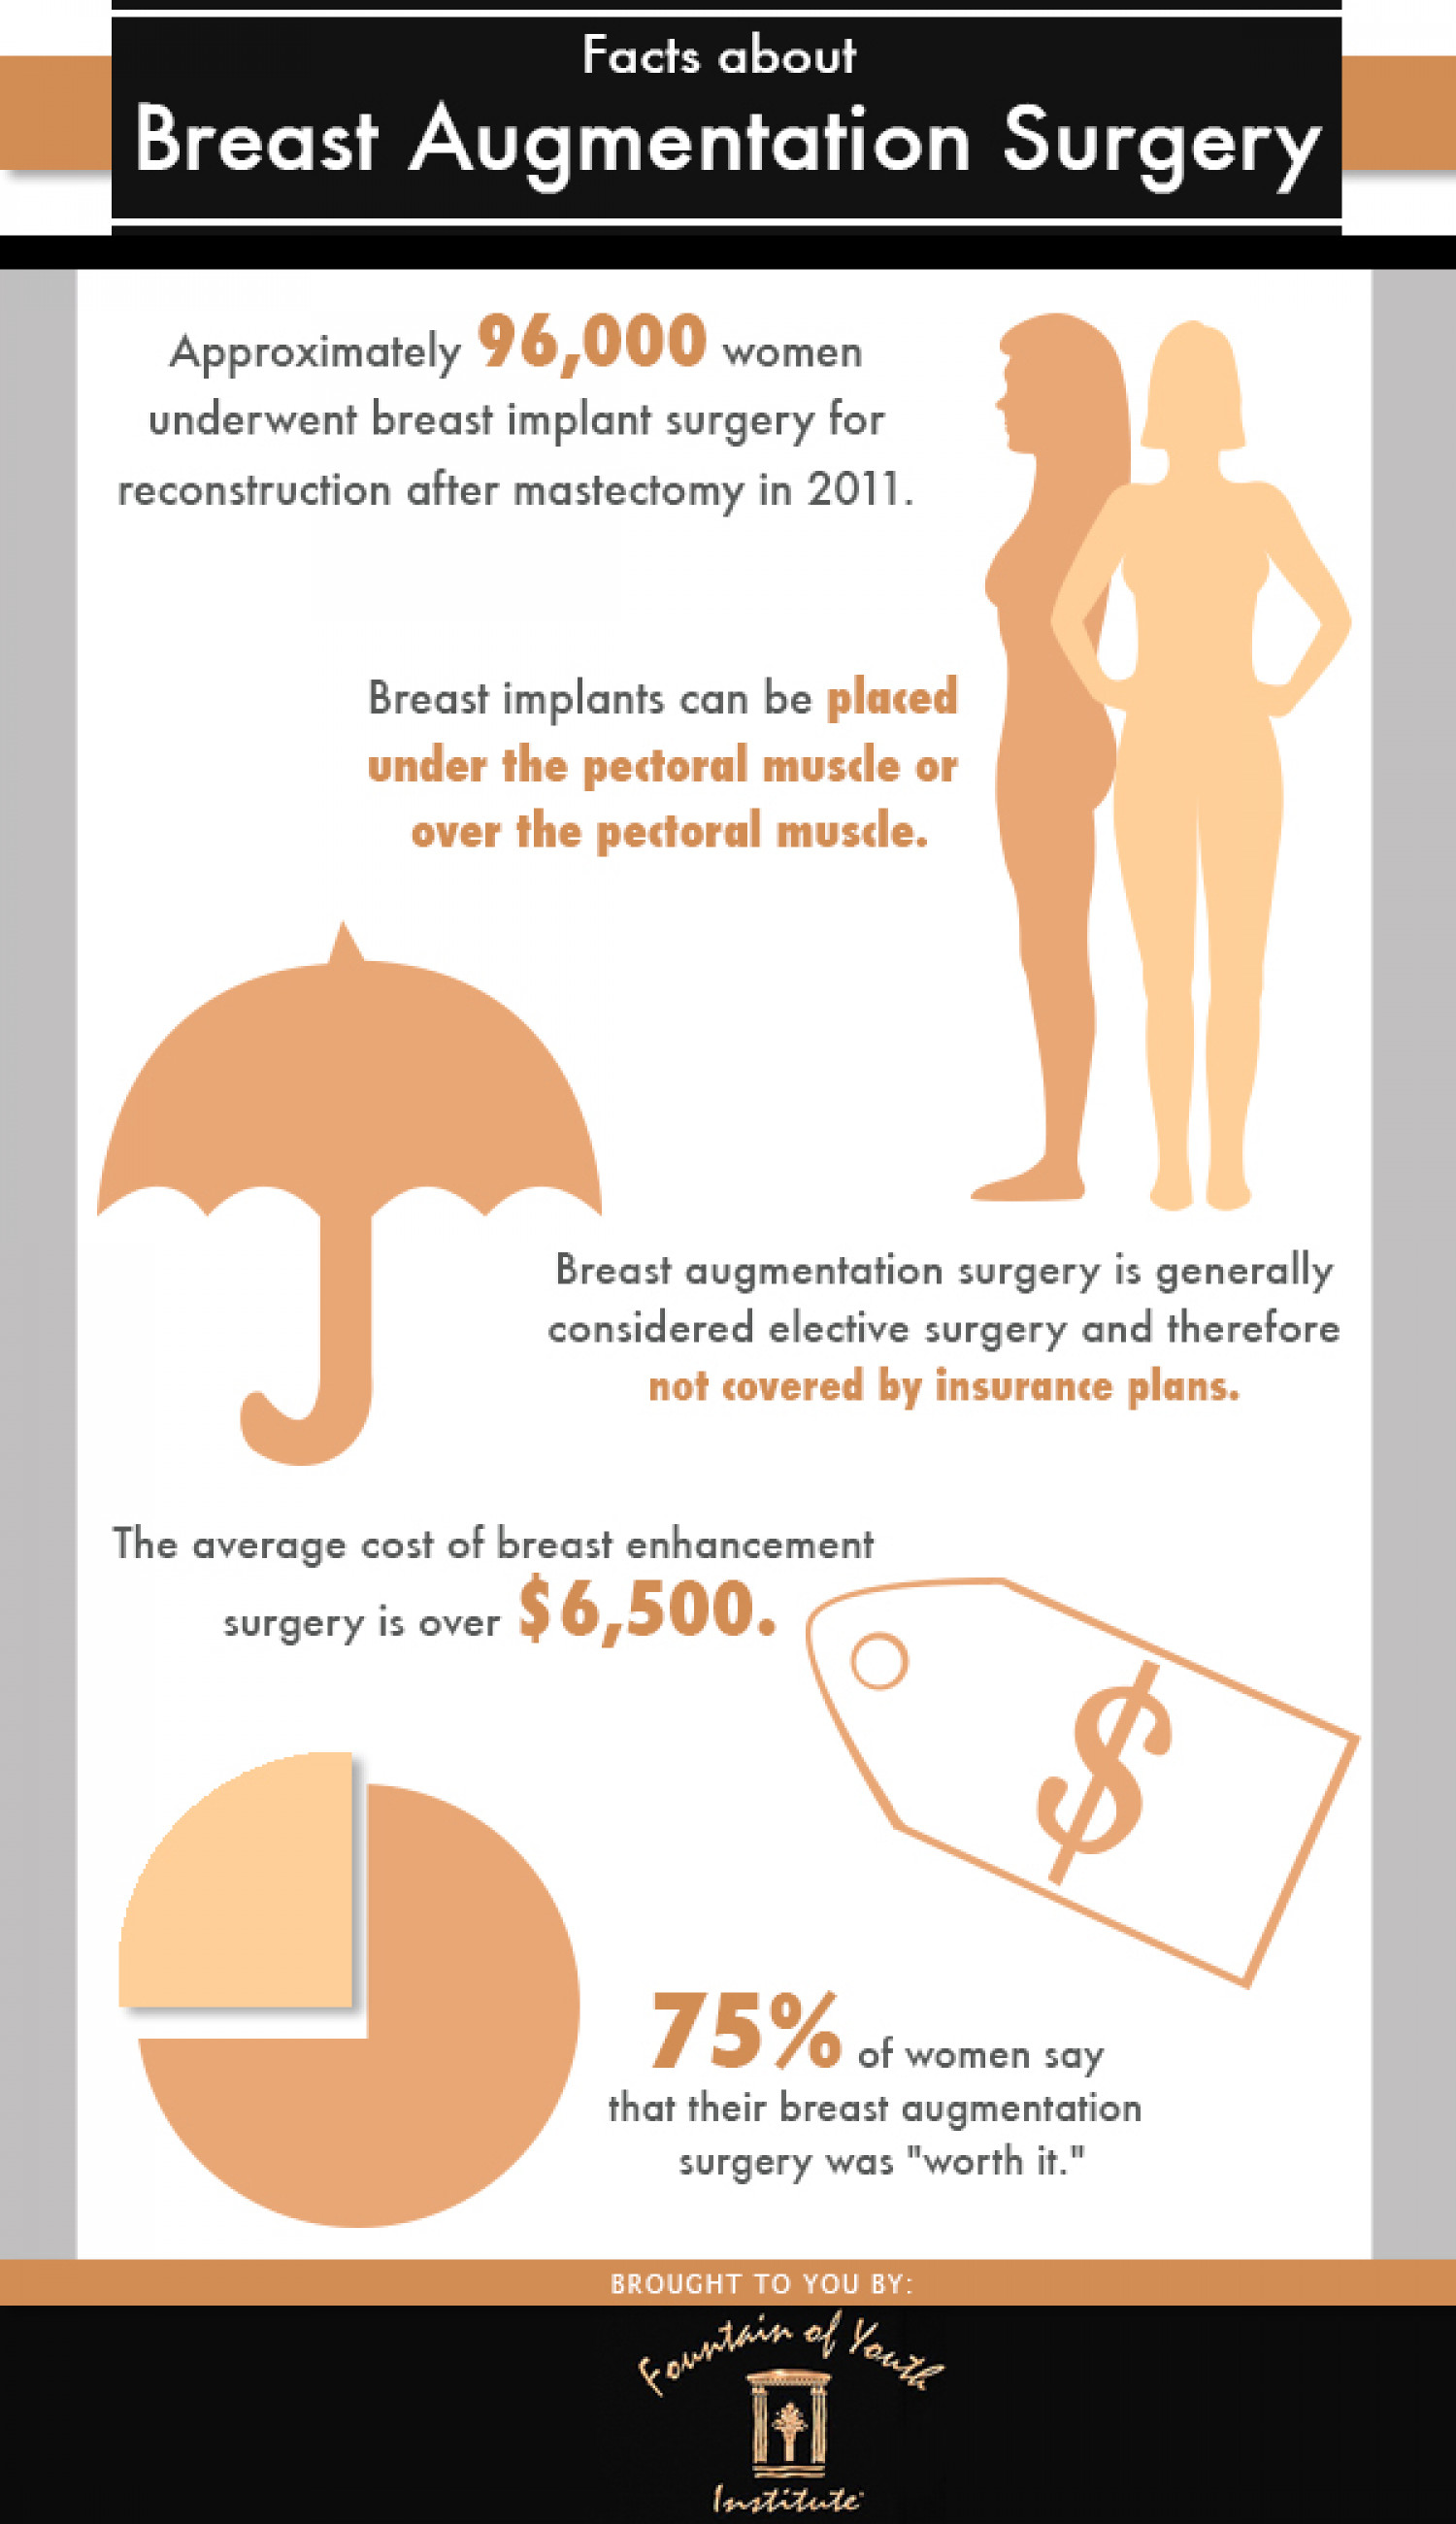 Facts About Breast Augmentation Surgery Infographic